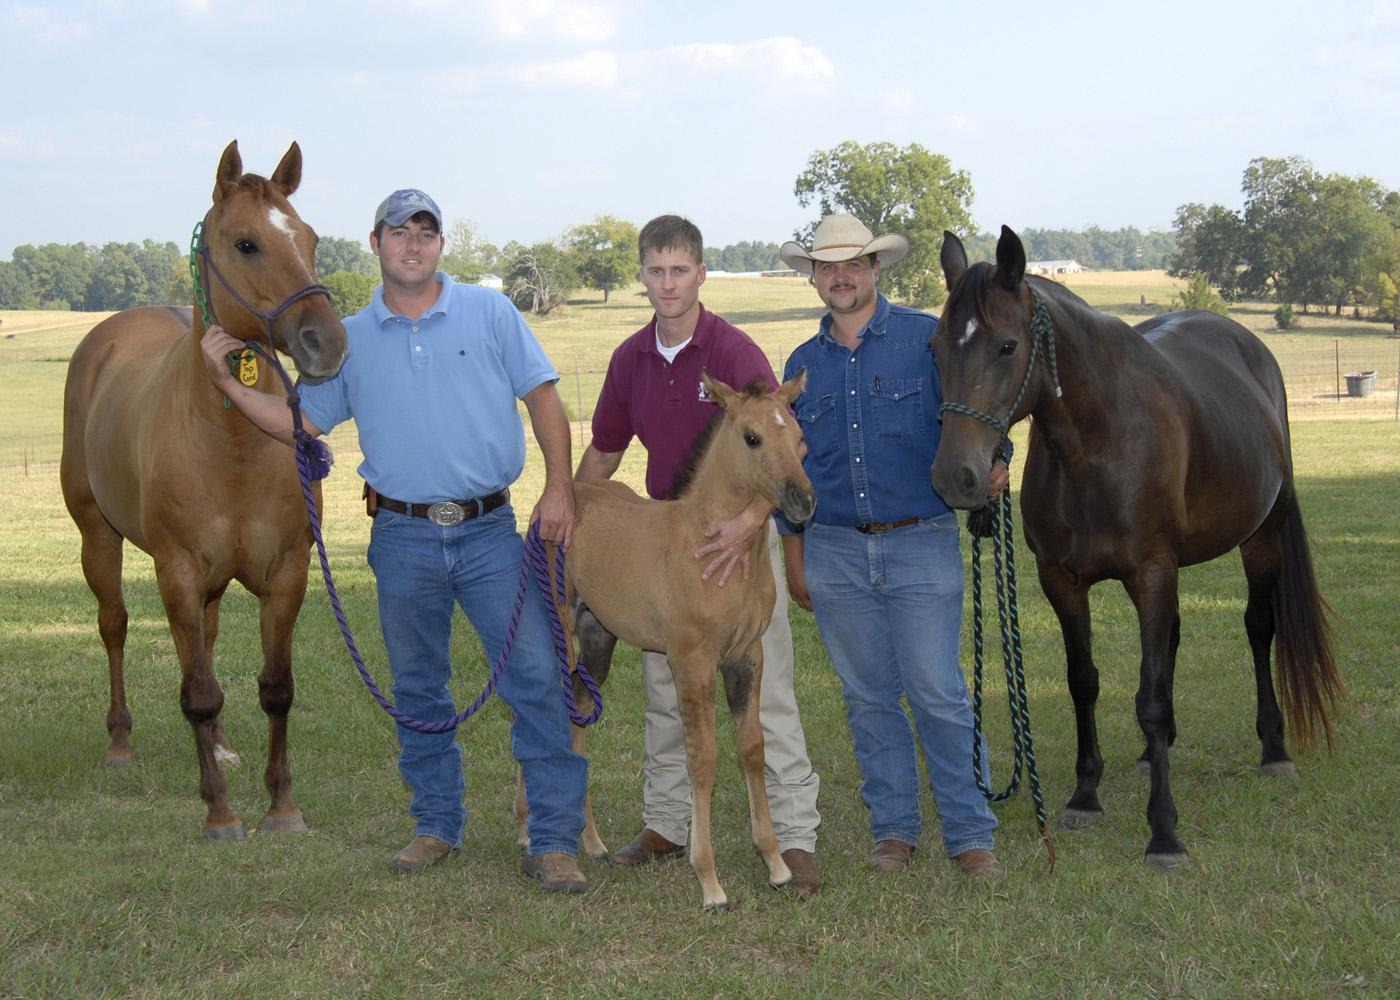 Two mothers with claim to one filly are together with Mississippi State University representatives Russ Farrar (from left), Dr. Kevin Walters and Greg Fulgham. Top Card, the filly's biological mother is a quarter horse and is on the left. Her surrogate mother, Avonlea, is a Tennessee walking horse and is on the right. (Photo by Tom Thompson)